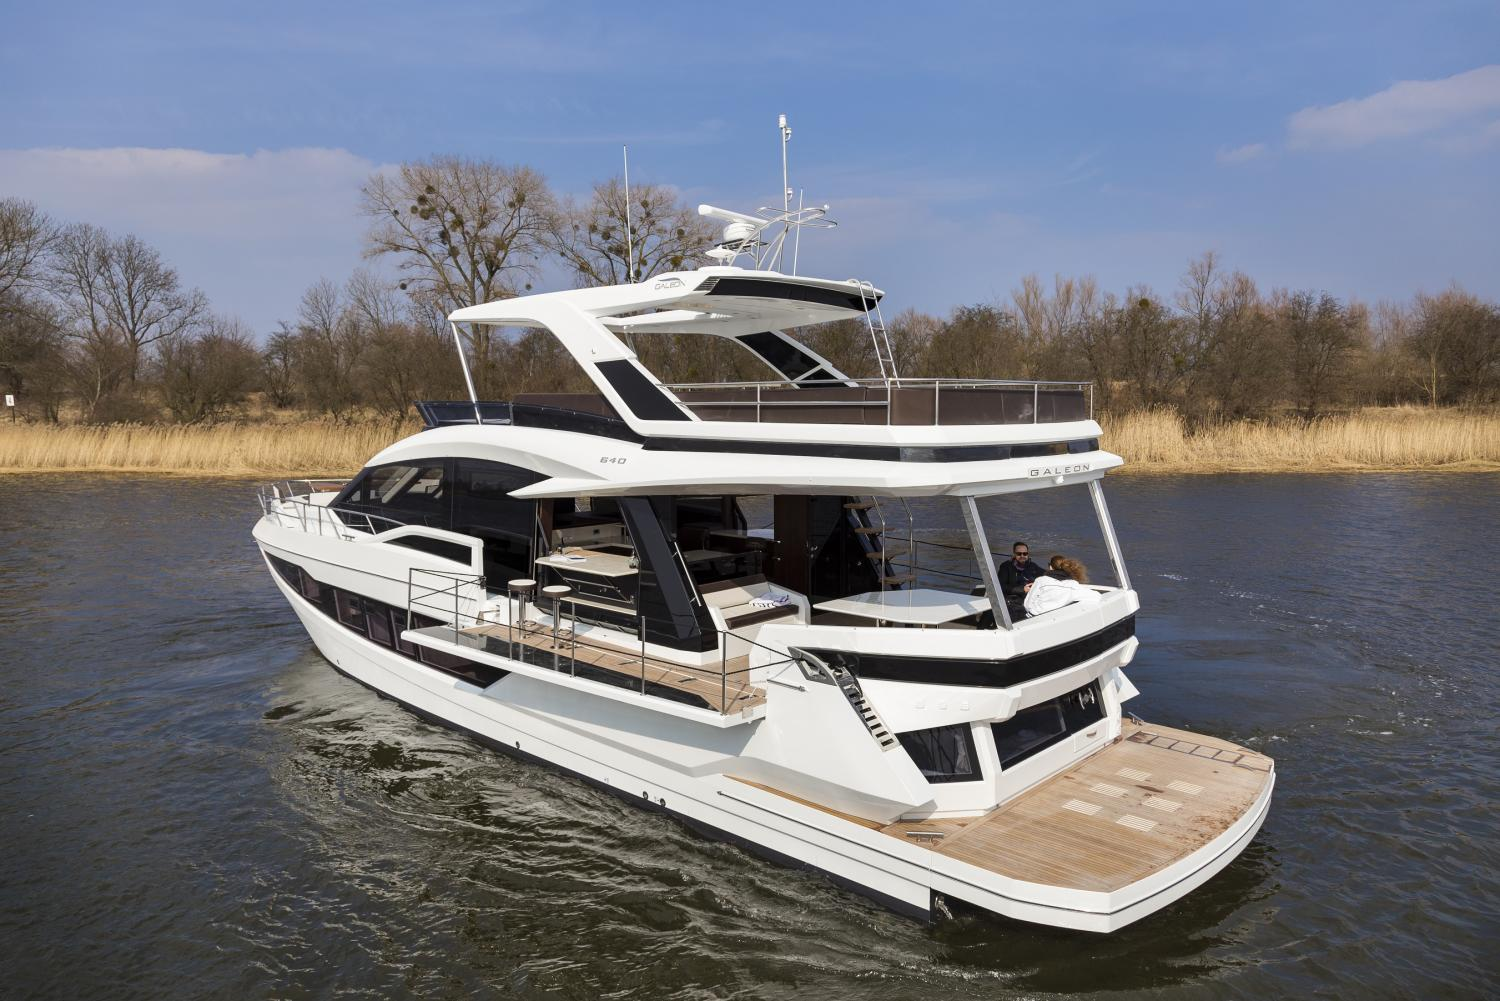 Image 1 for Galeon 640 Fly Wins for Innovation